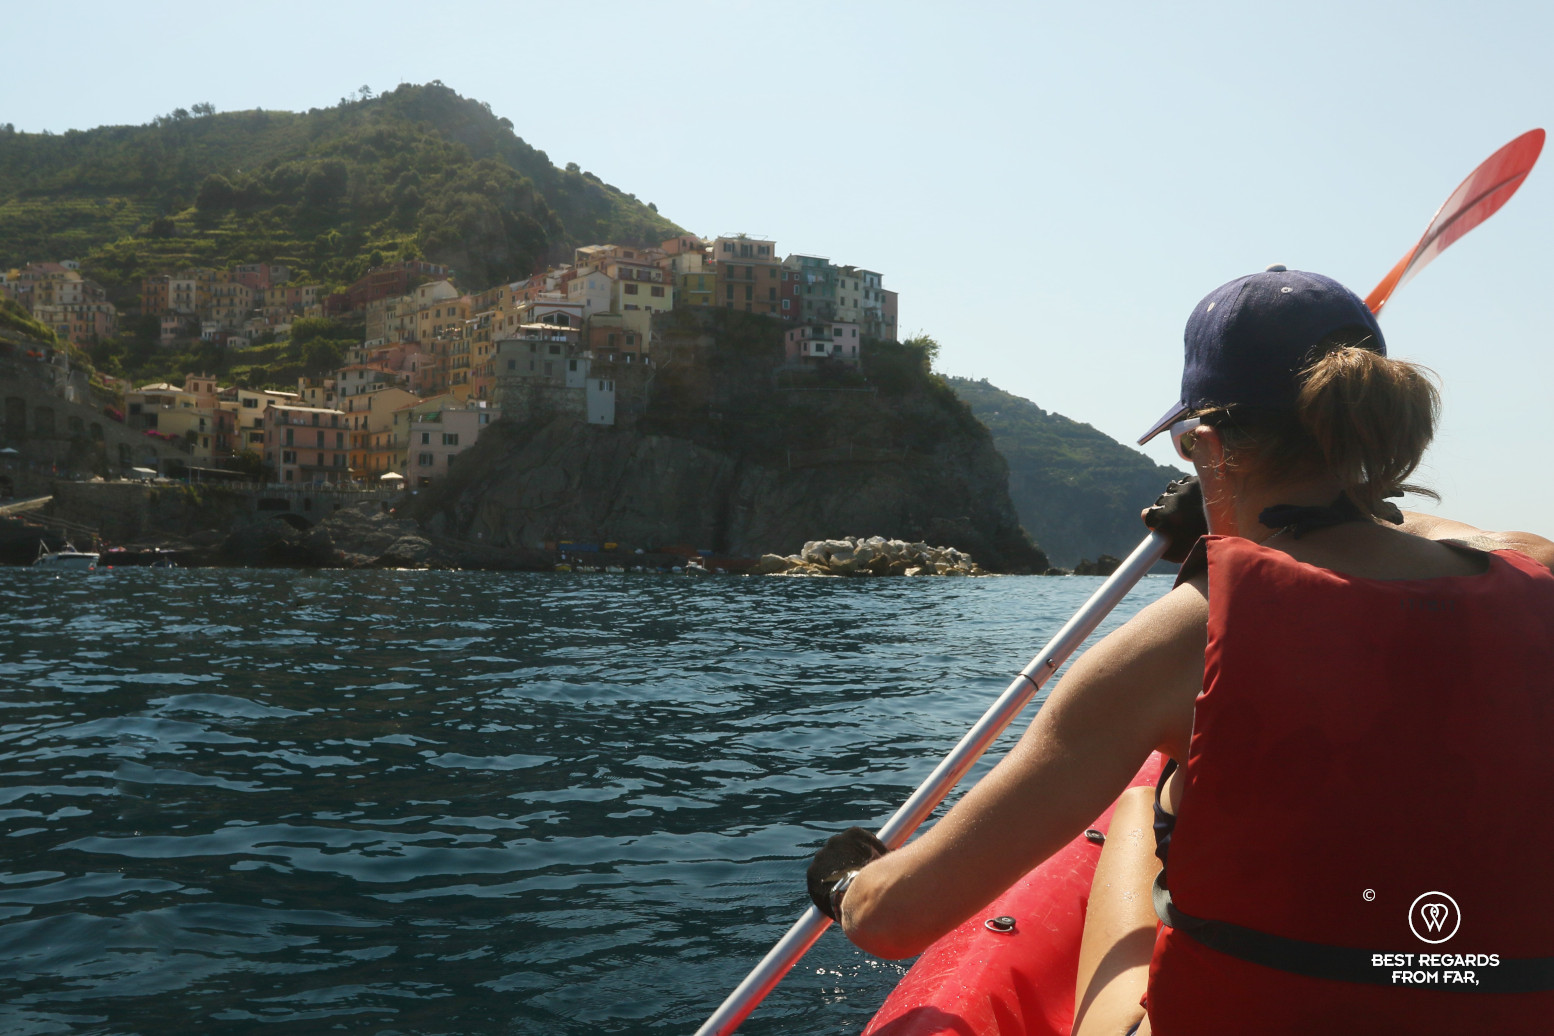 Woman kayaking on the sea by a village built on a cliff